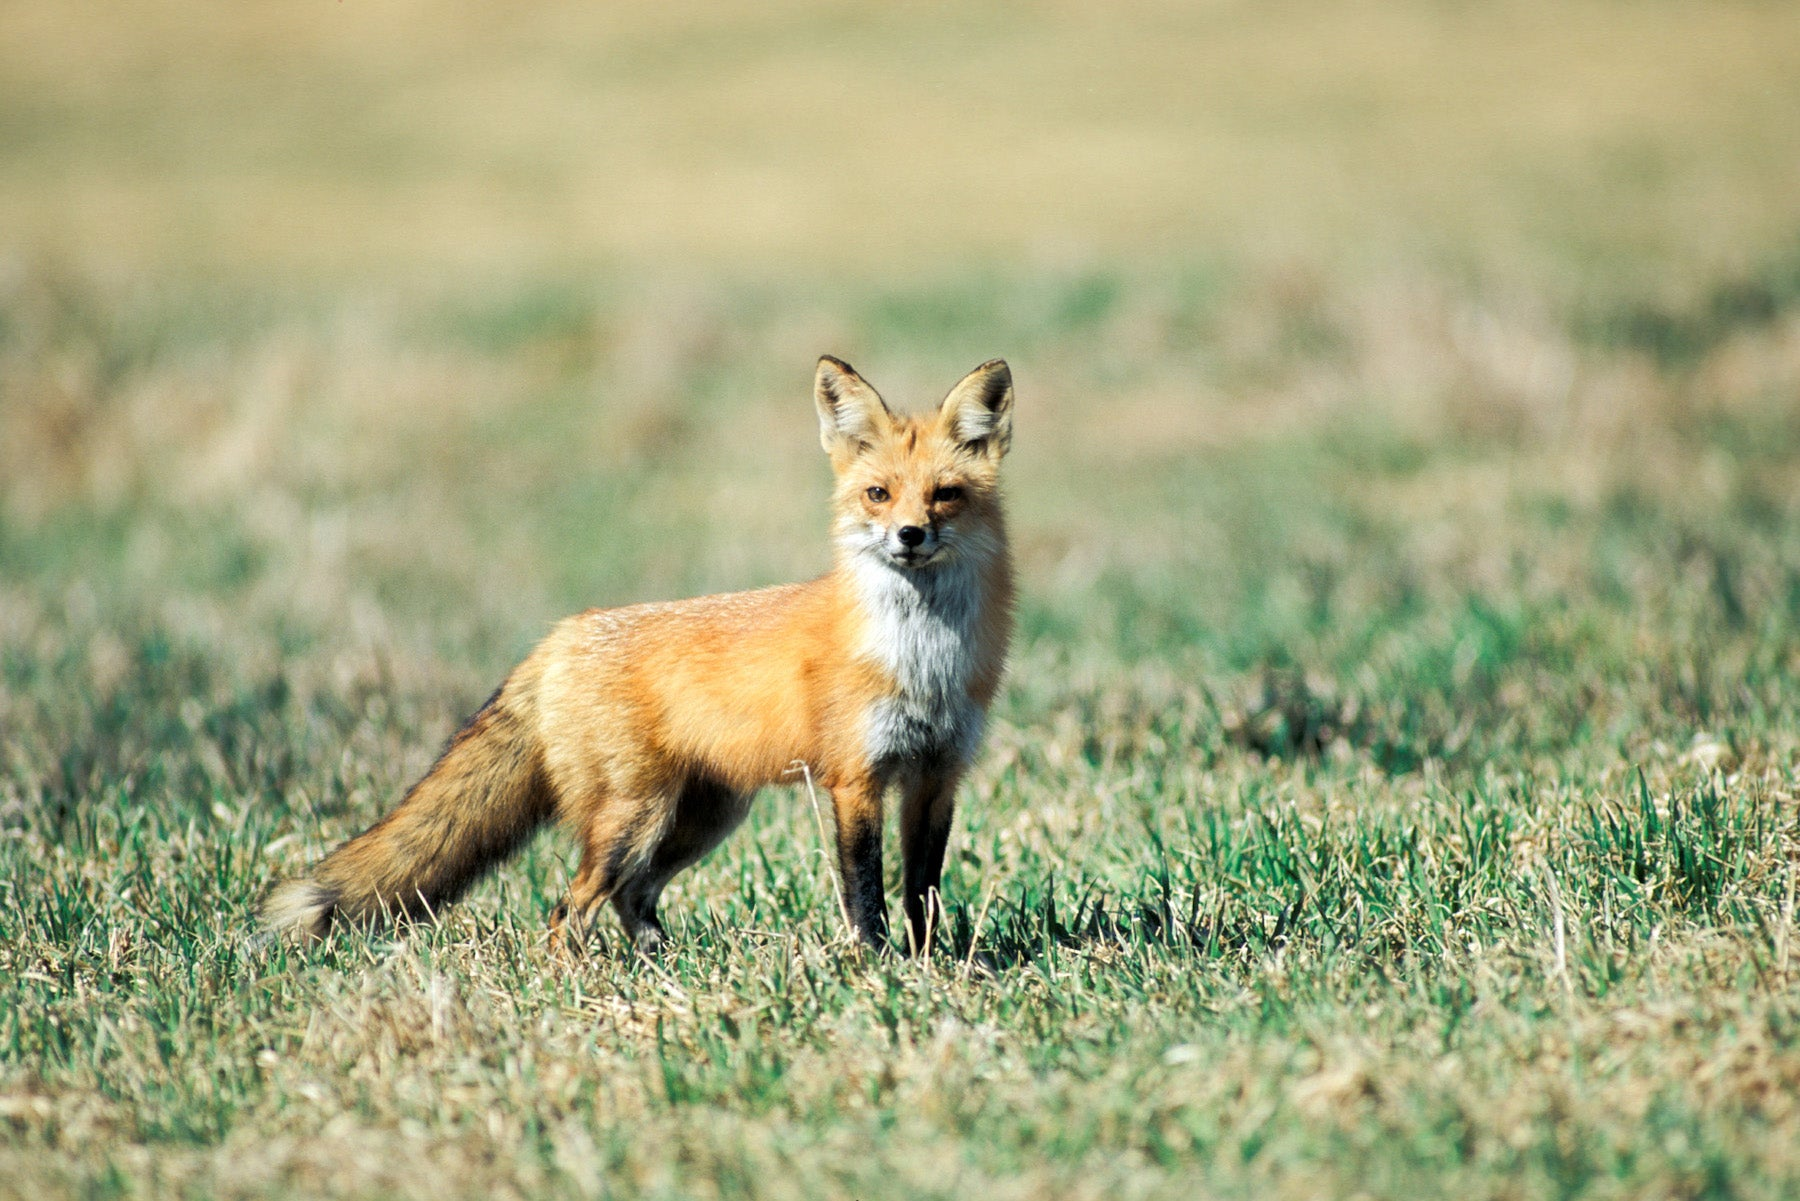 red fox standing in a yard